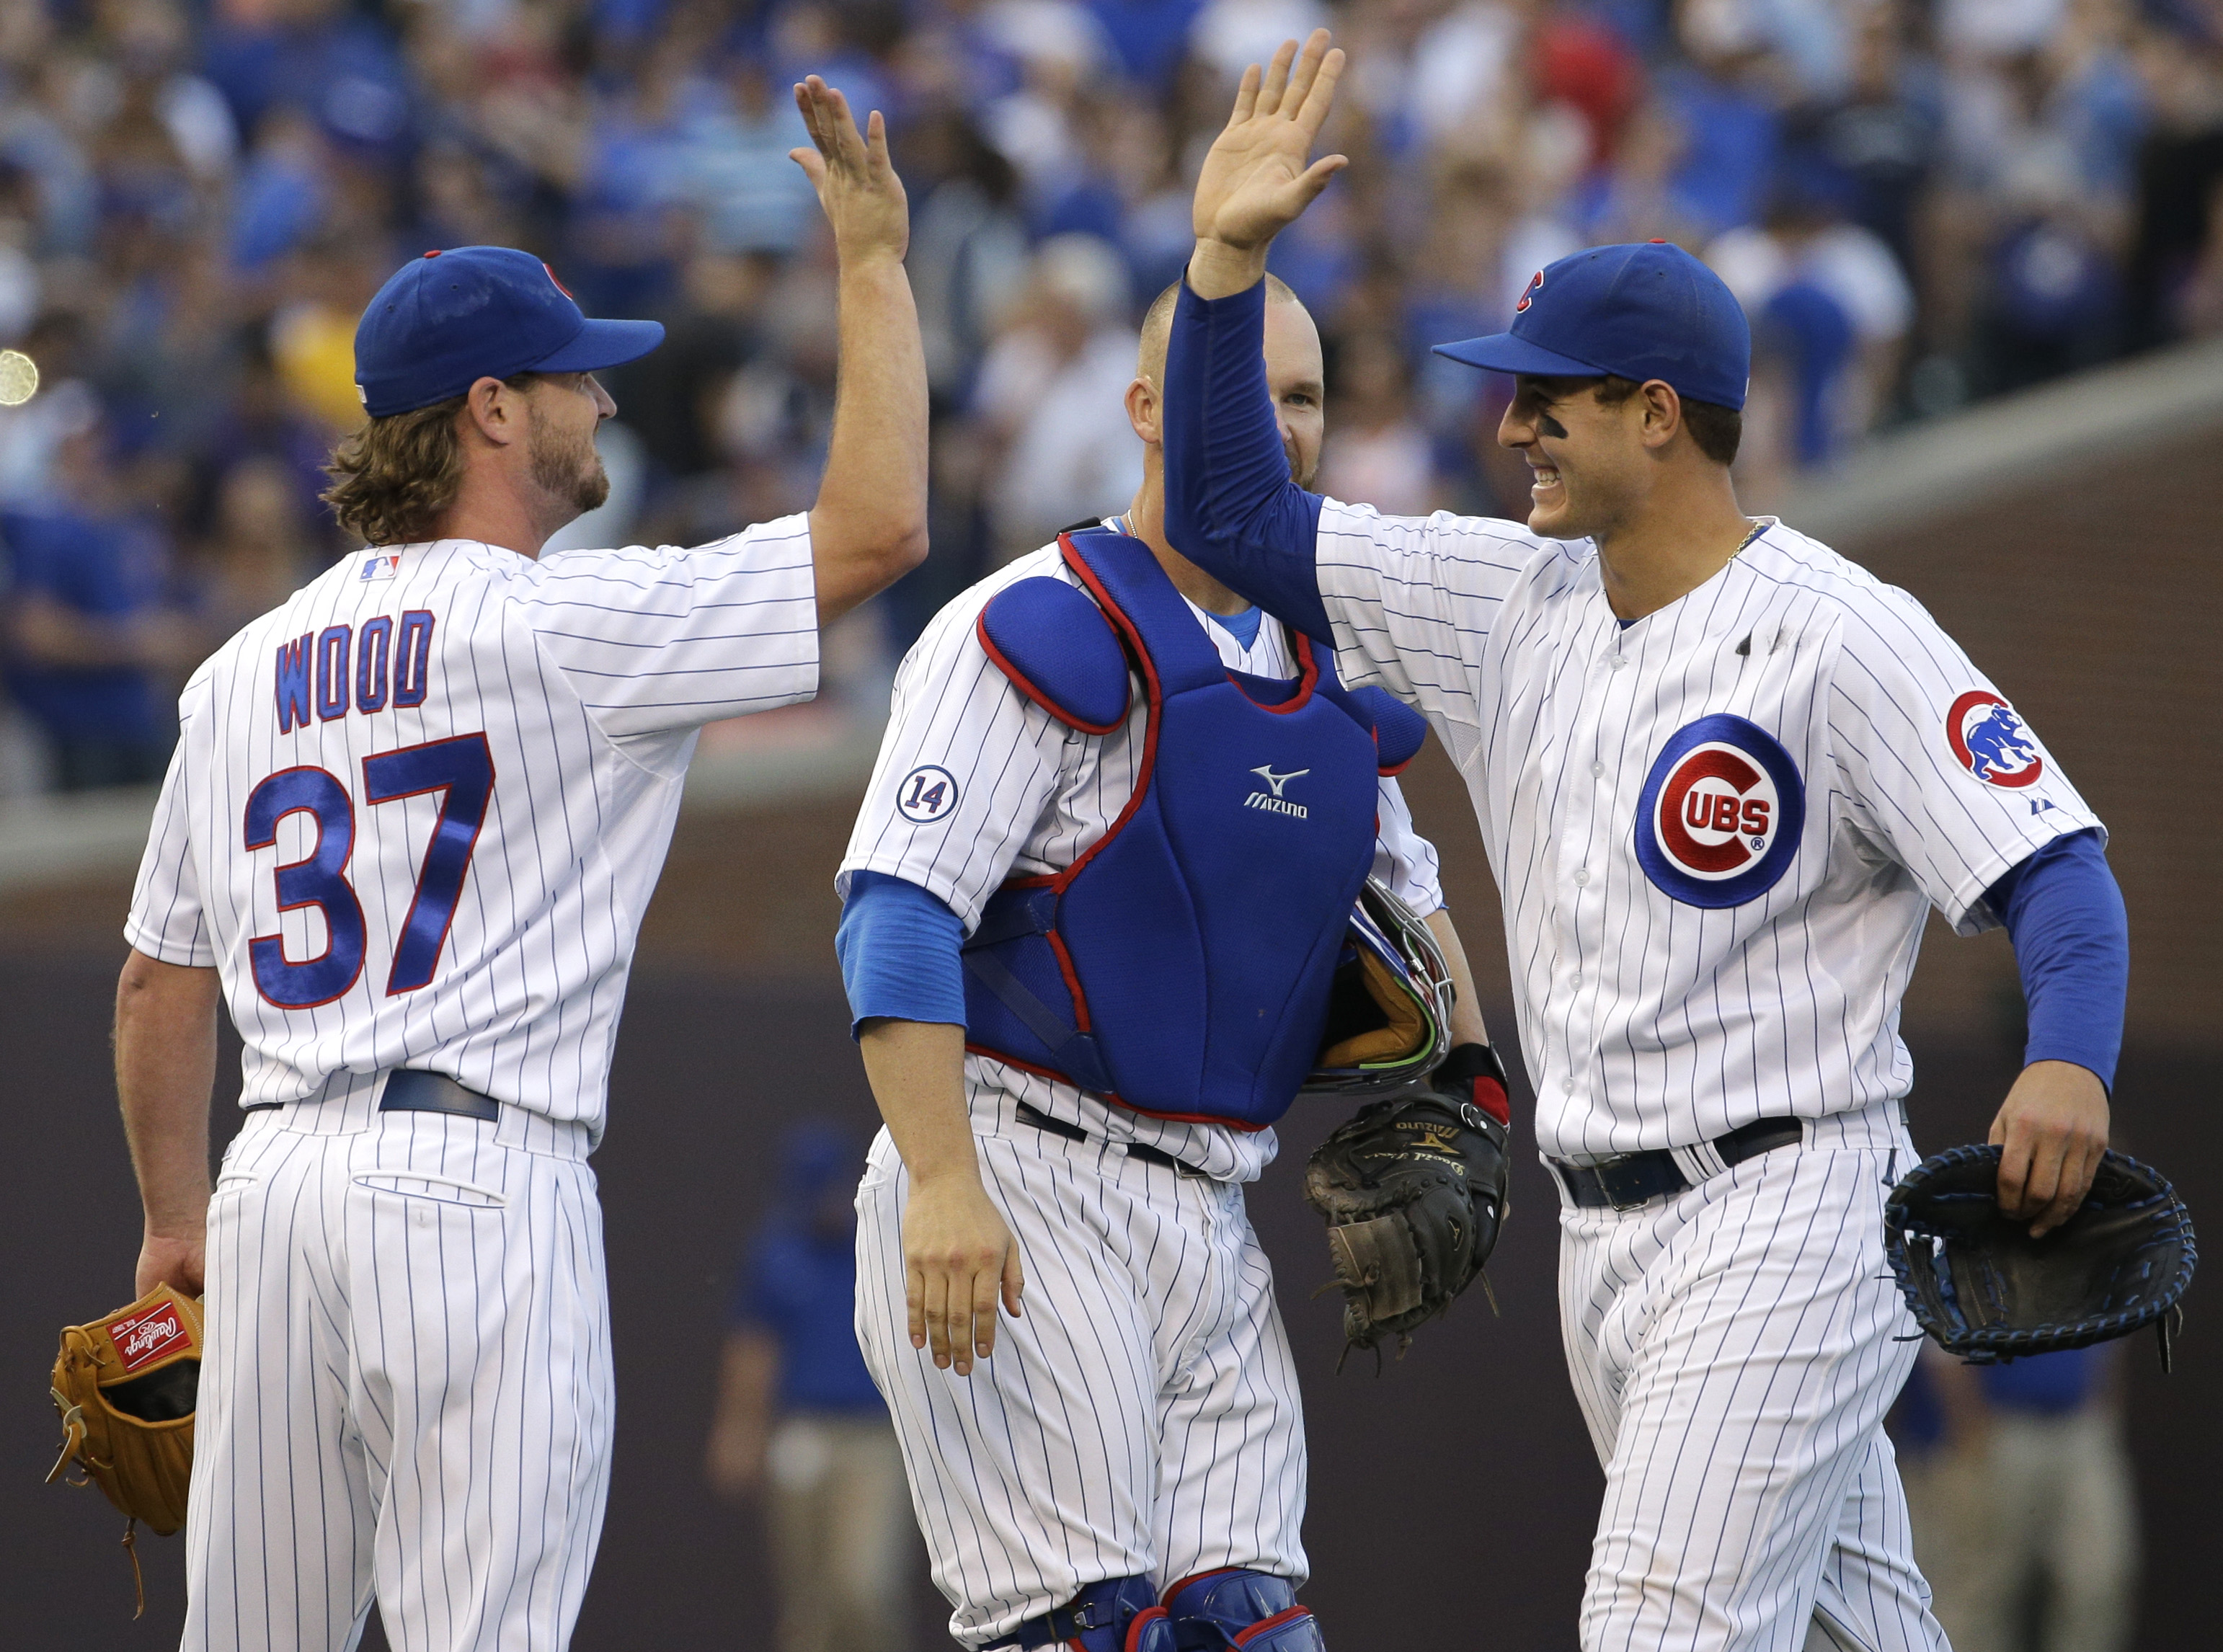 Chicago Cubs first baseman Anthony Rizzo, right, celebrates with closer Travis Wood, left, and catcher David Ross after they defeated the Pittsburgh Pirates 4-1 in a baseball game Saturday, May 16, 2015, in Chicago. (AP Photo/Nam Y. Huh)